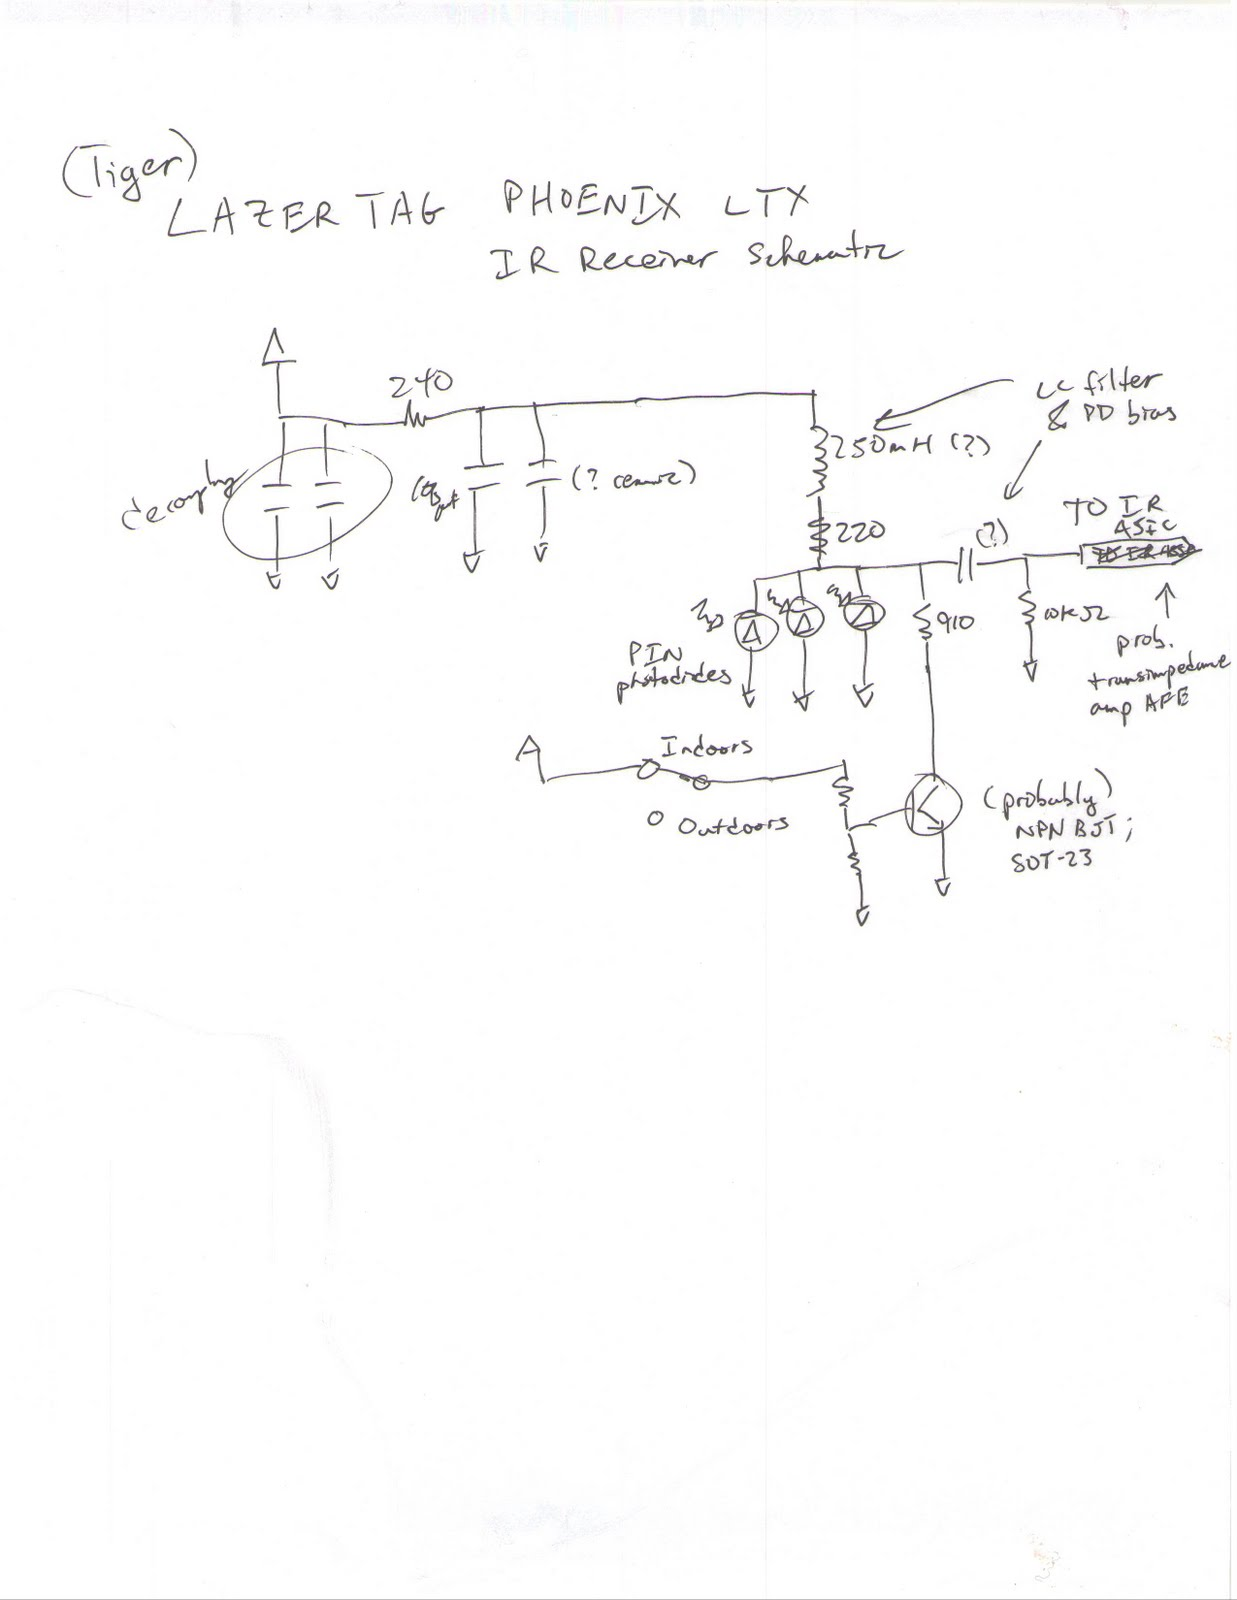 Lazer Tag Infrared Receivers - schematic